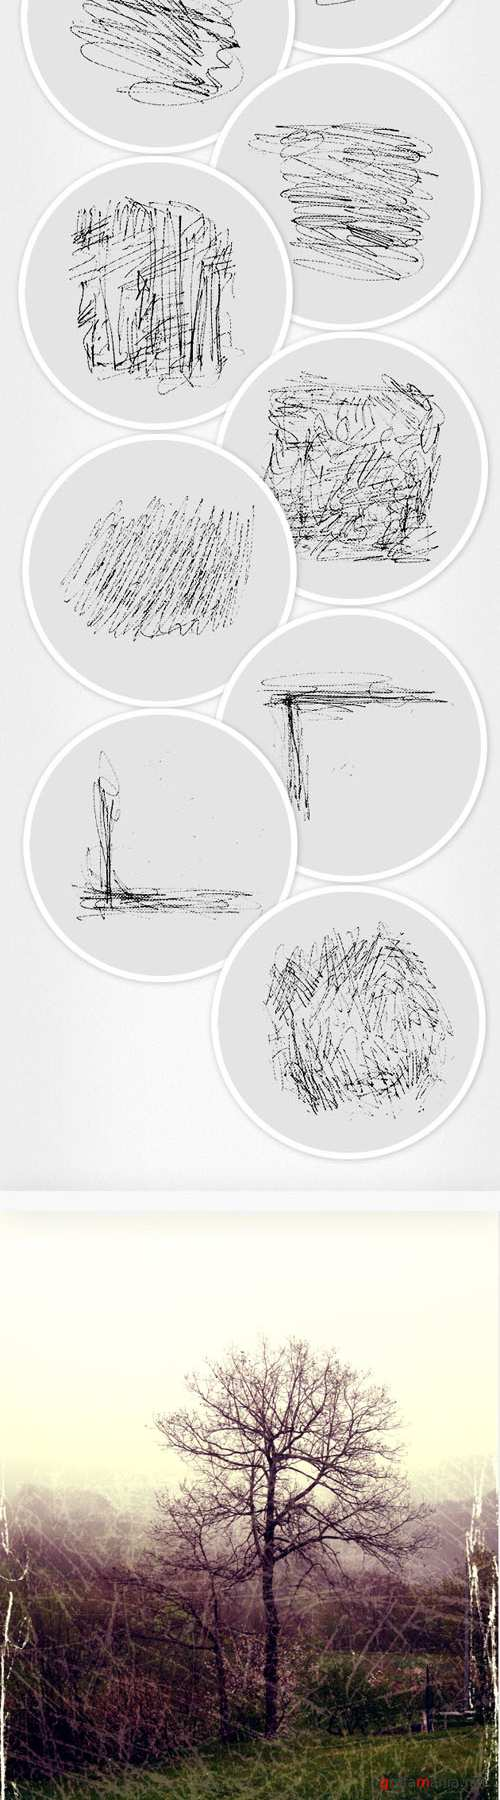 Designtnt - Ink Scratches Photoshop Brushes